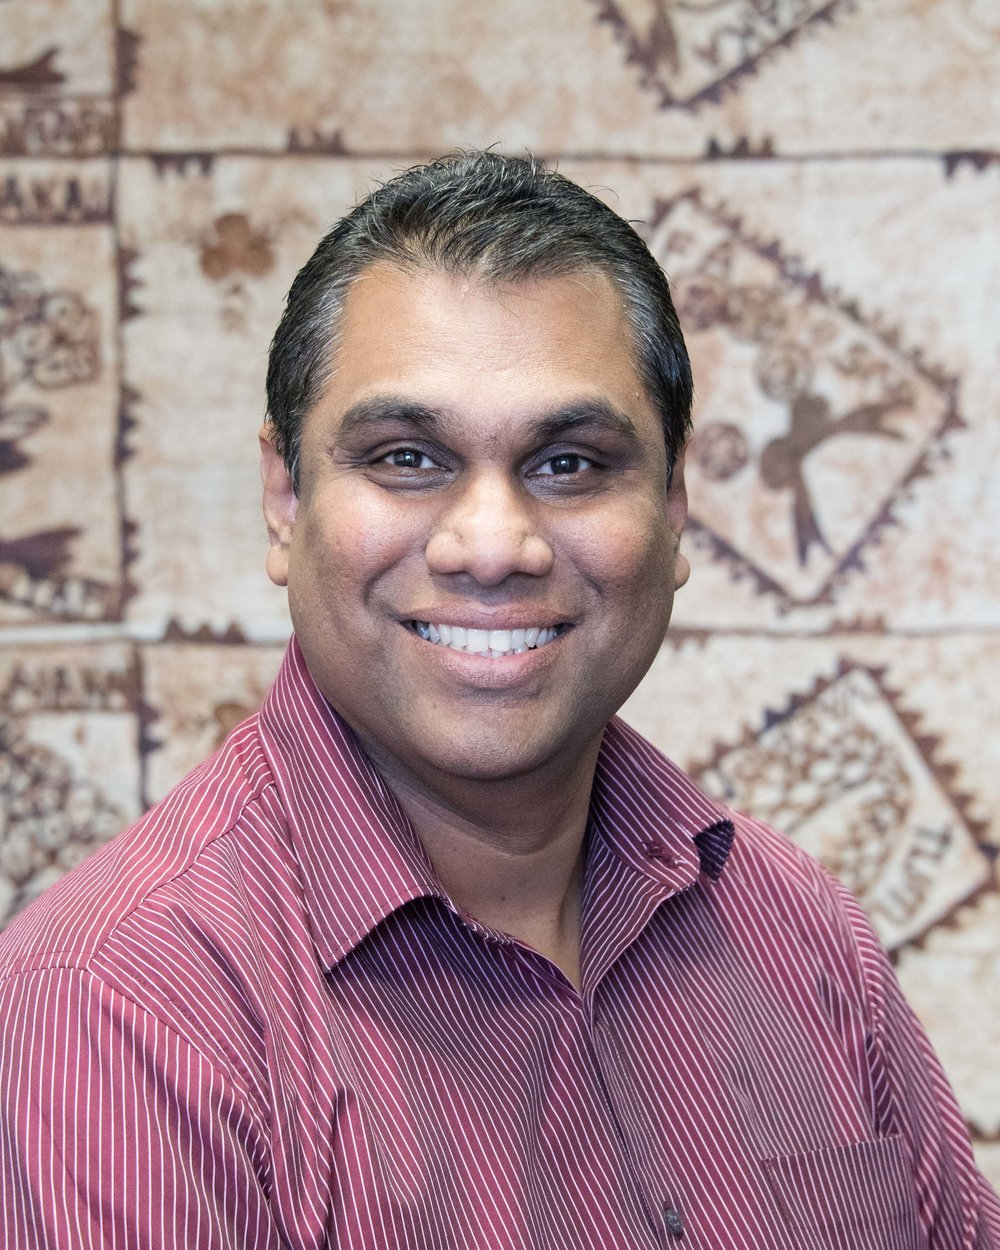 Chamath Ekanayake   Business Support Administrator  Chamath is responsible for business administration at FSM and developing commercial partnerships.  Born and raised in Sri Lanka, Chamath emigrated to New Zealand in 2014 to be with his family.  He has a background in financial analysis, business and marketing, and holds an MBA from the University of Sri Jayewardenepura.  Chamath is passionate about running the organisation in the most efficient way possible, so cost-savings can be reinvested into FSM's frontline work with vulnerable families.